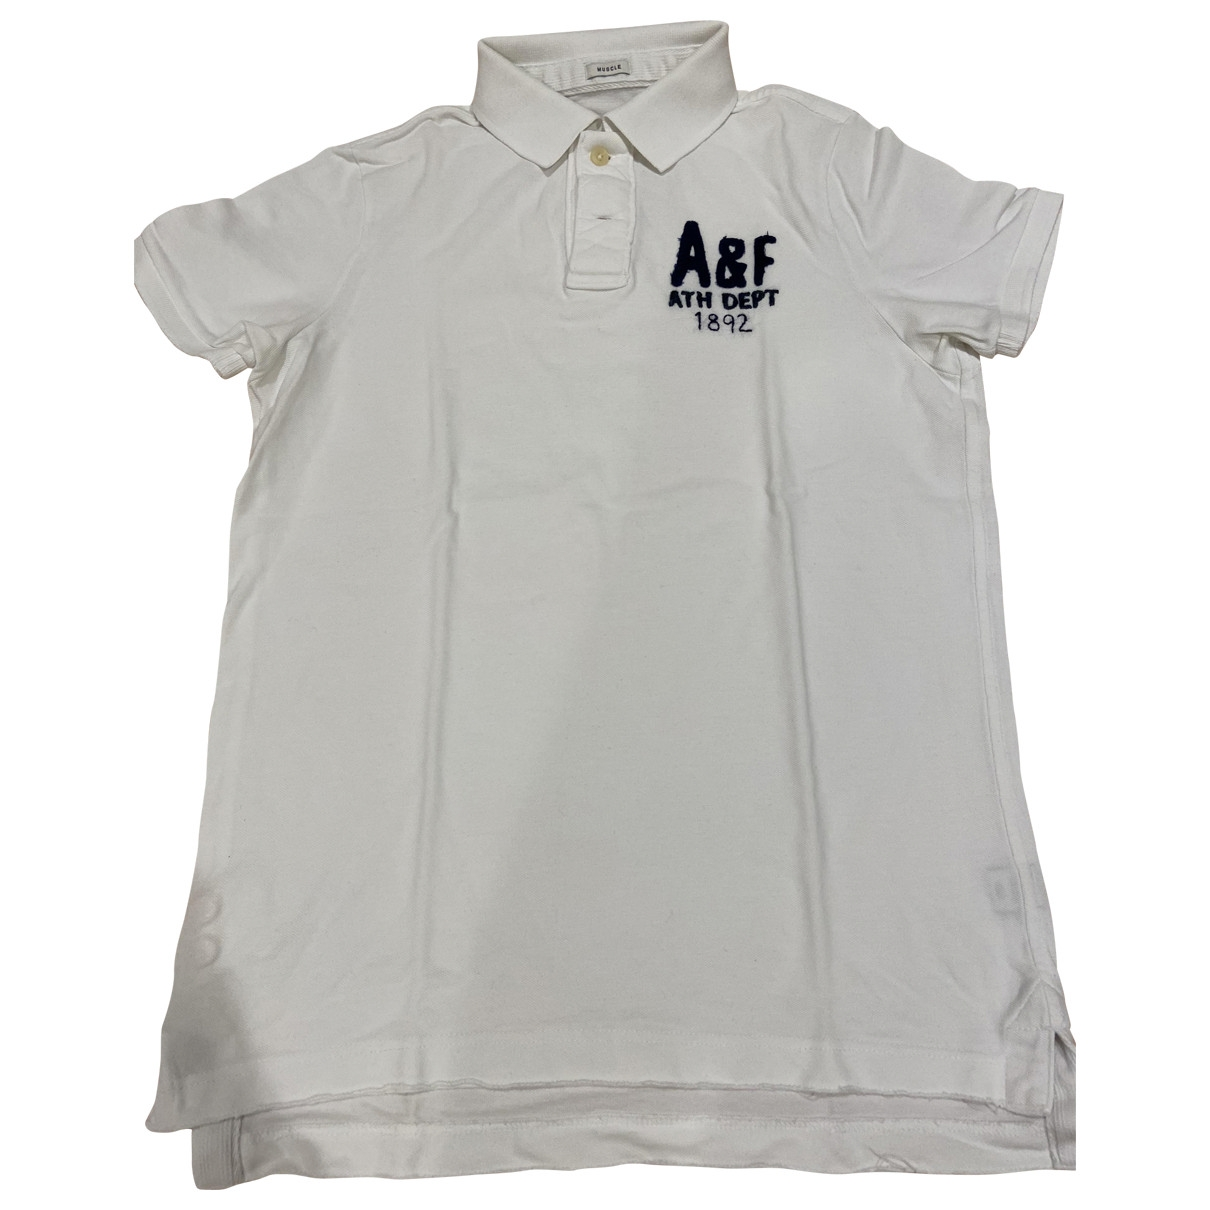 Abercrombie & Fitch \N White Cotton Polo shirts for Men XL International